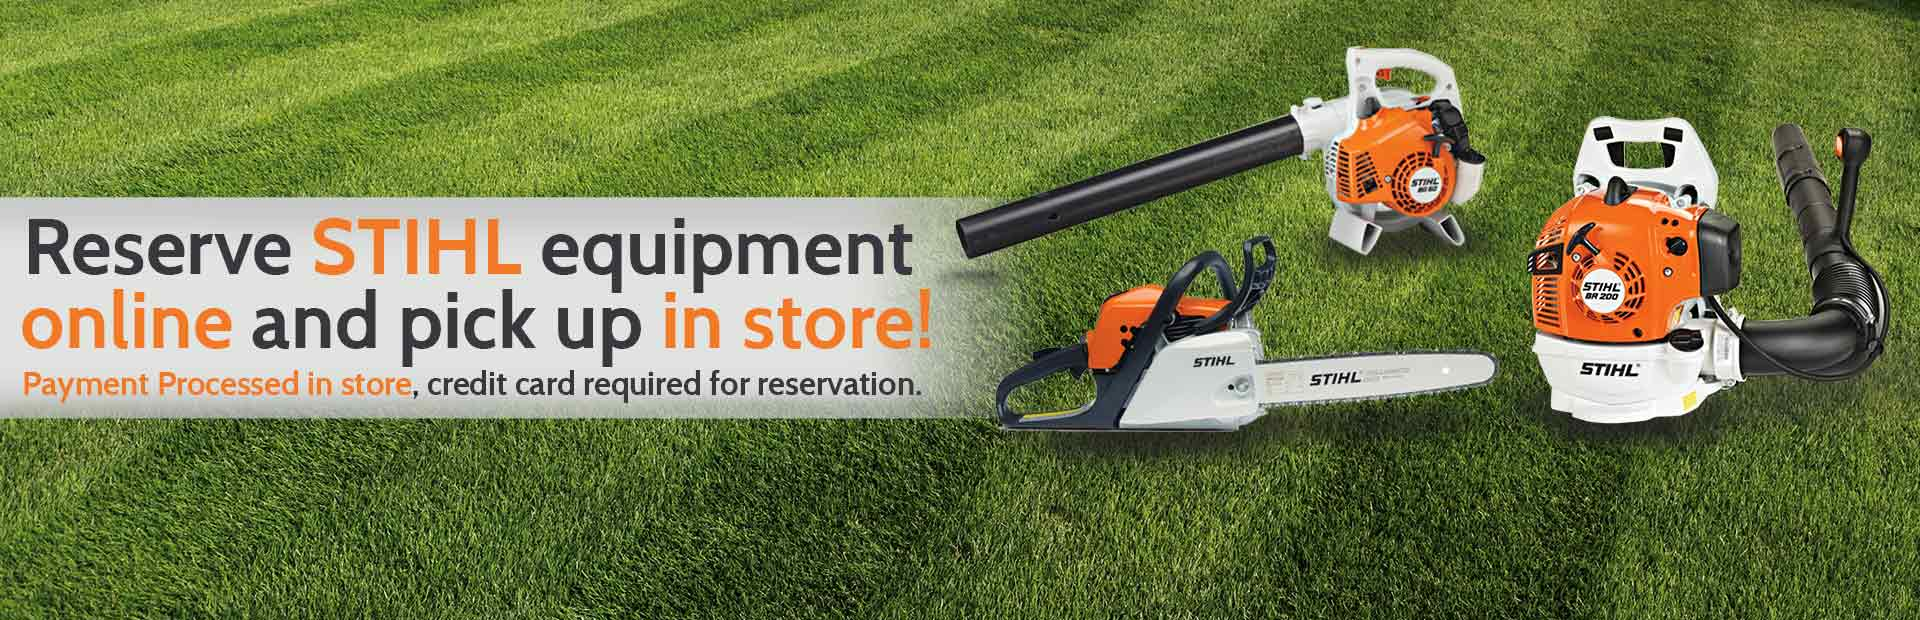 Reserve STIHL equipment online and pick up in the store! Click here to view the models.